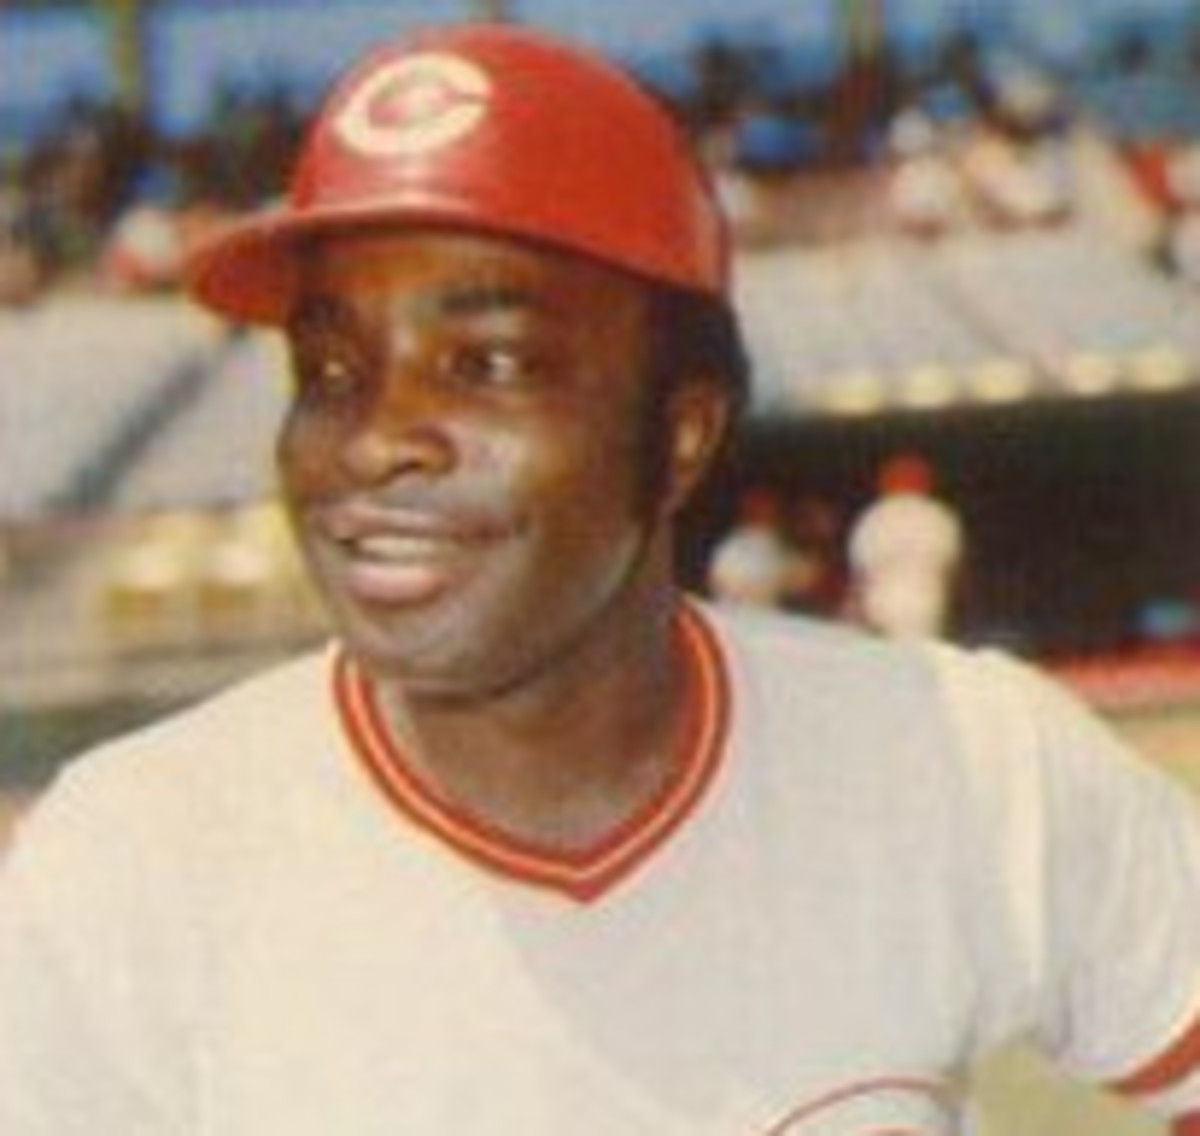 joe-morgan-will-always-be-a-questionable-hall-of-famer